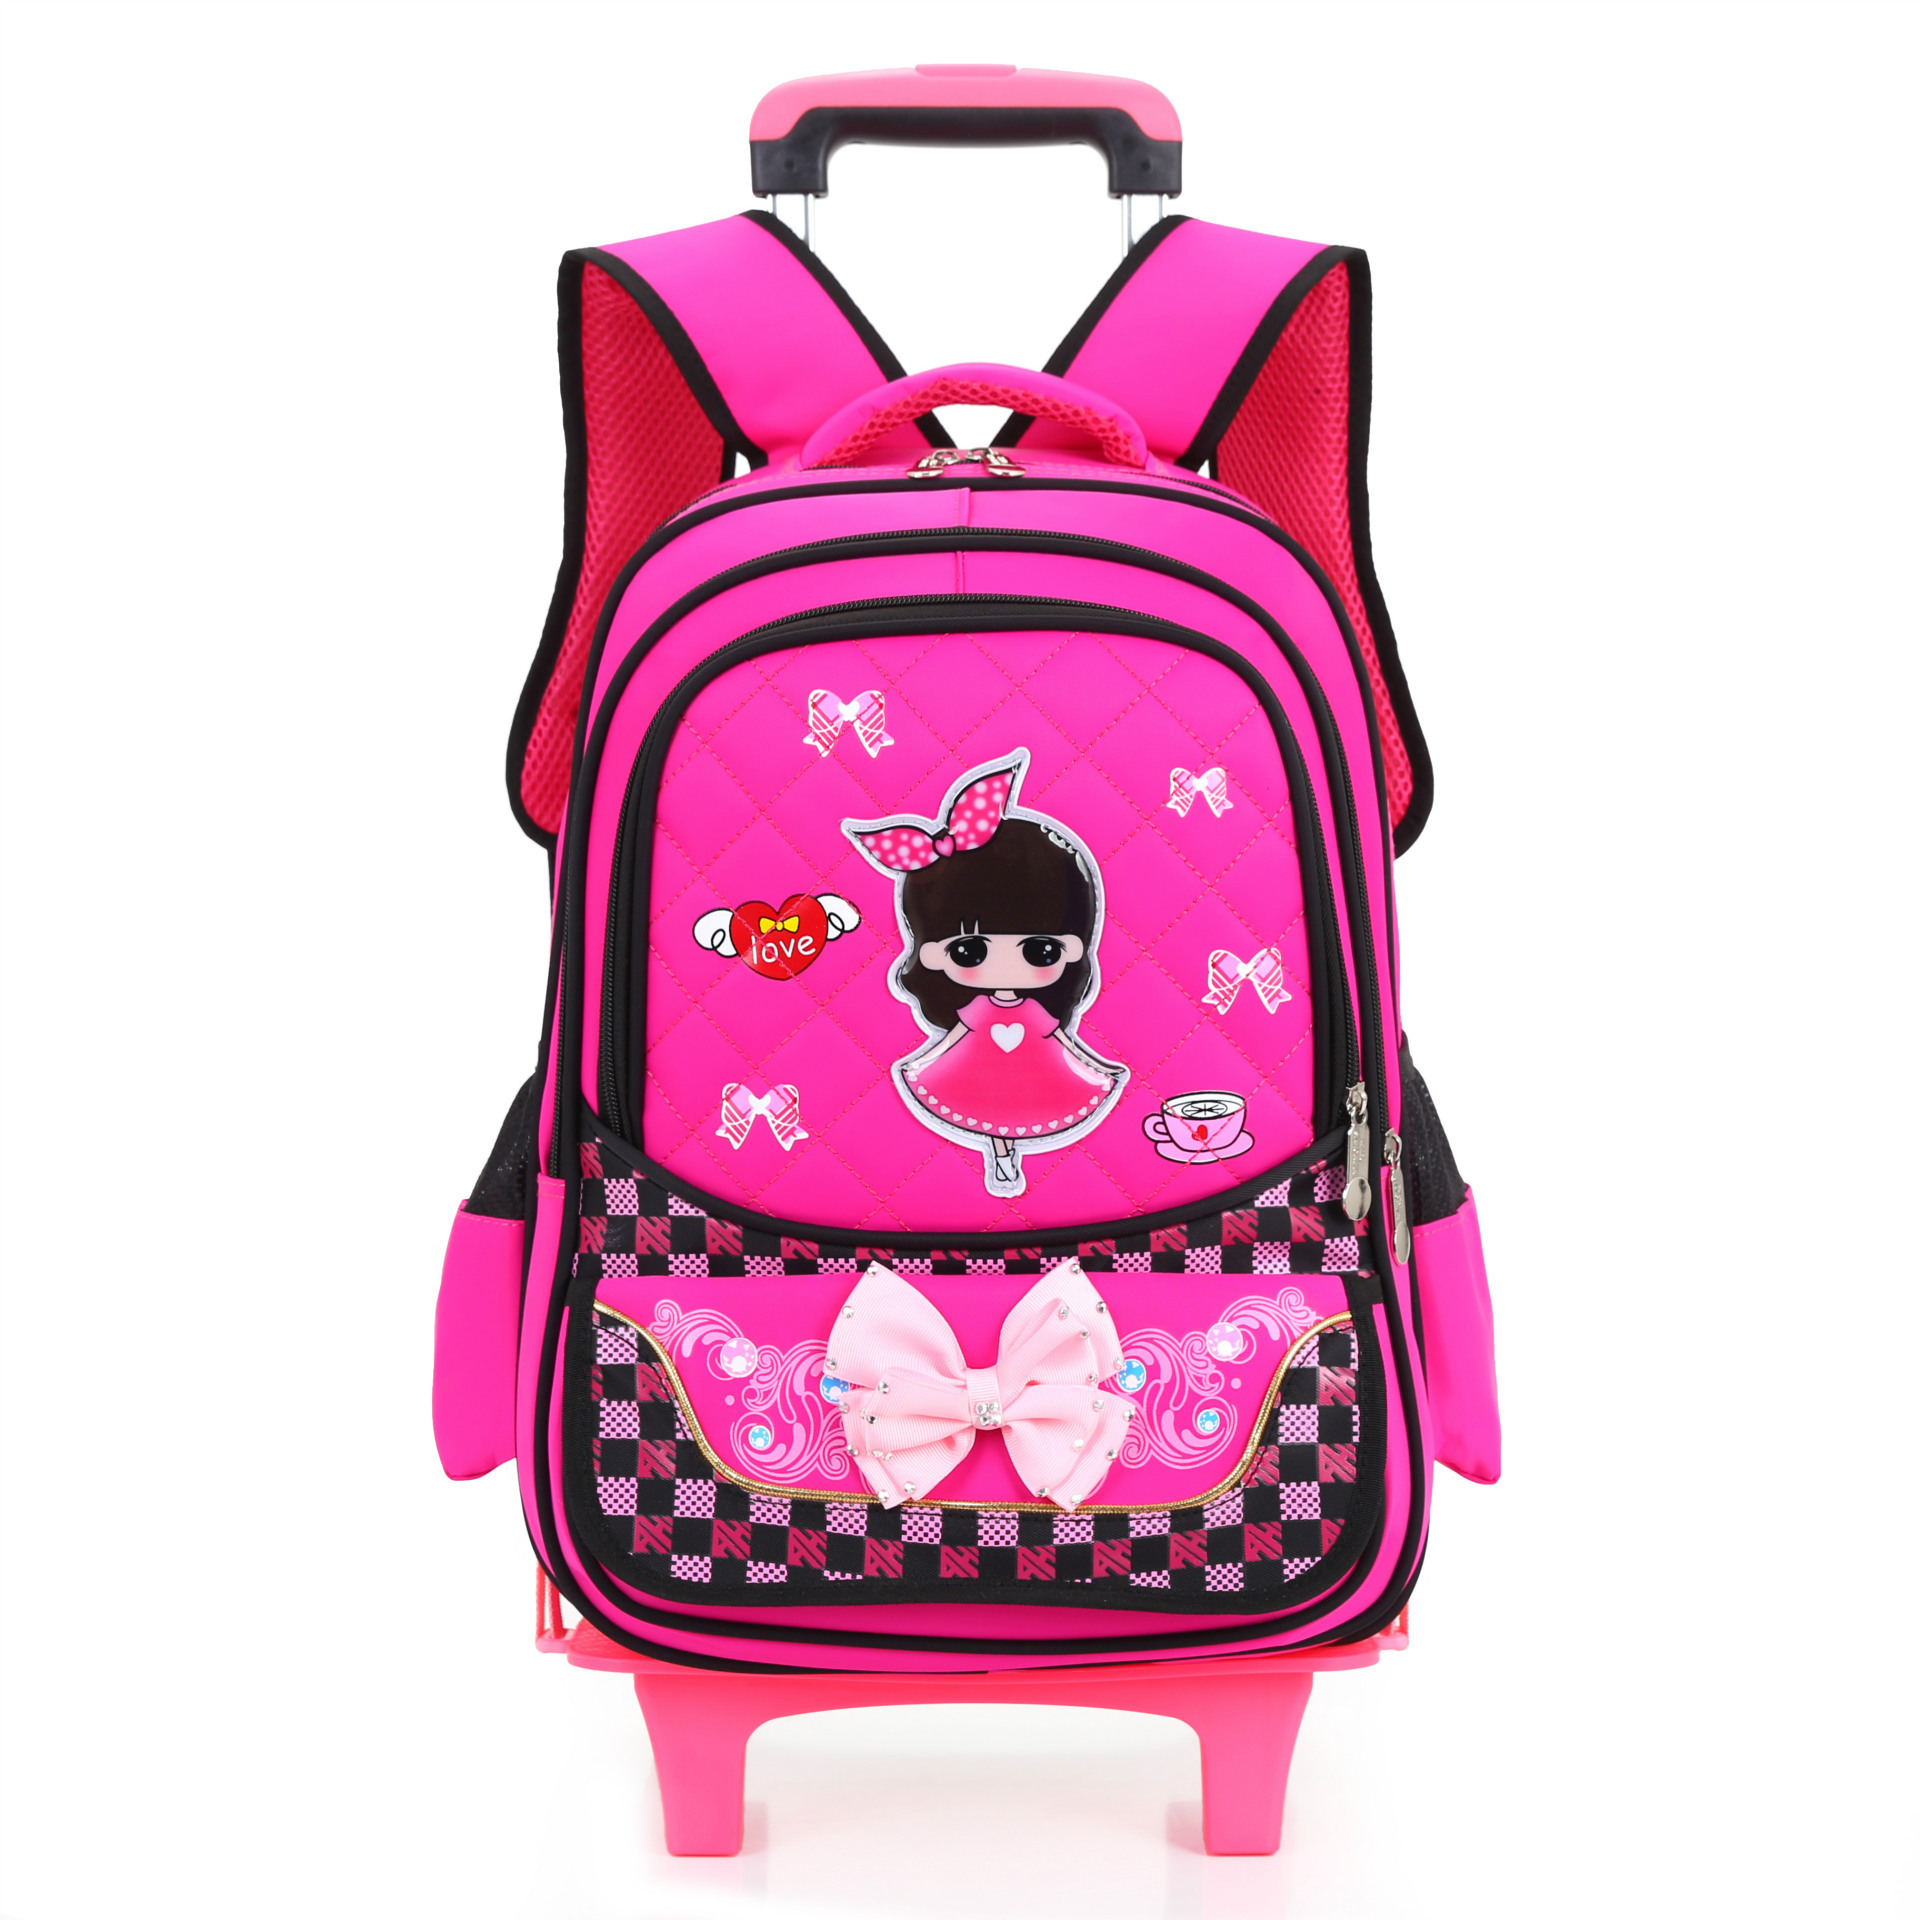 Kids Backpack With Wheel Stair Trolley School Bags kids Children's Backpack Schoolbags kids Wheeled Book Bag For girls Mochilas(China)